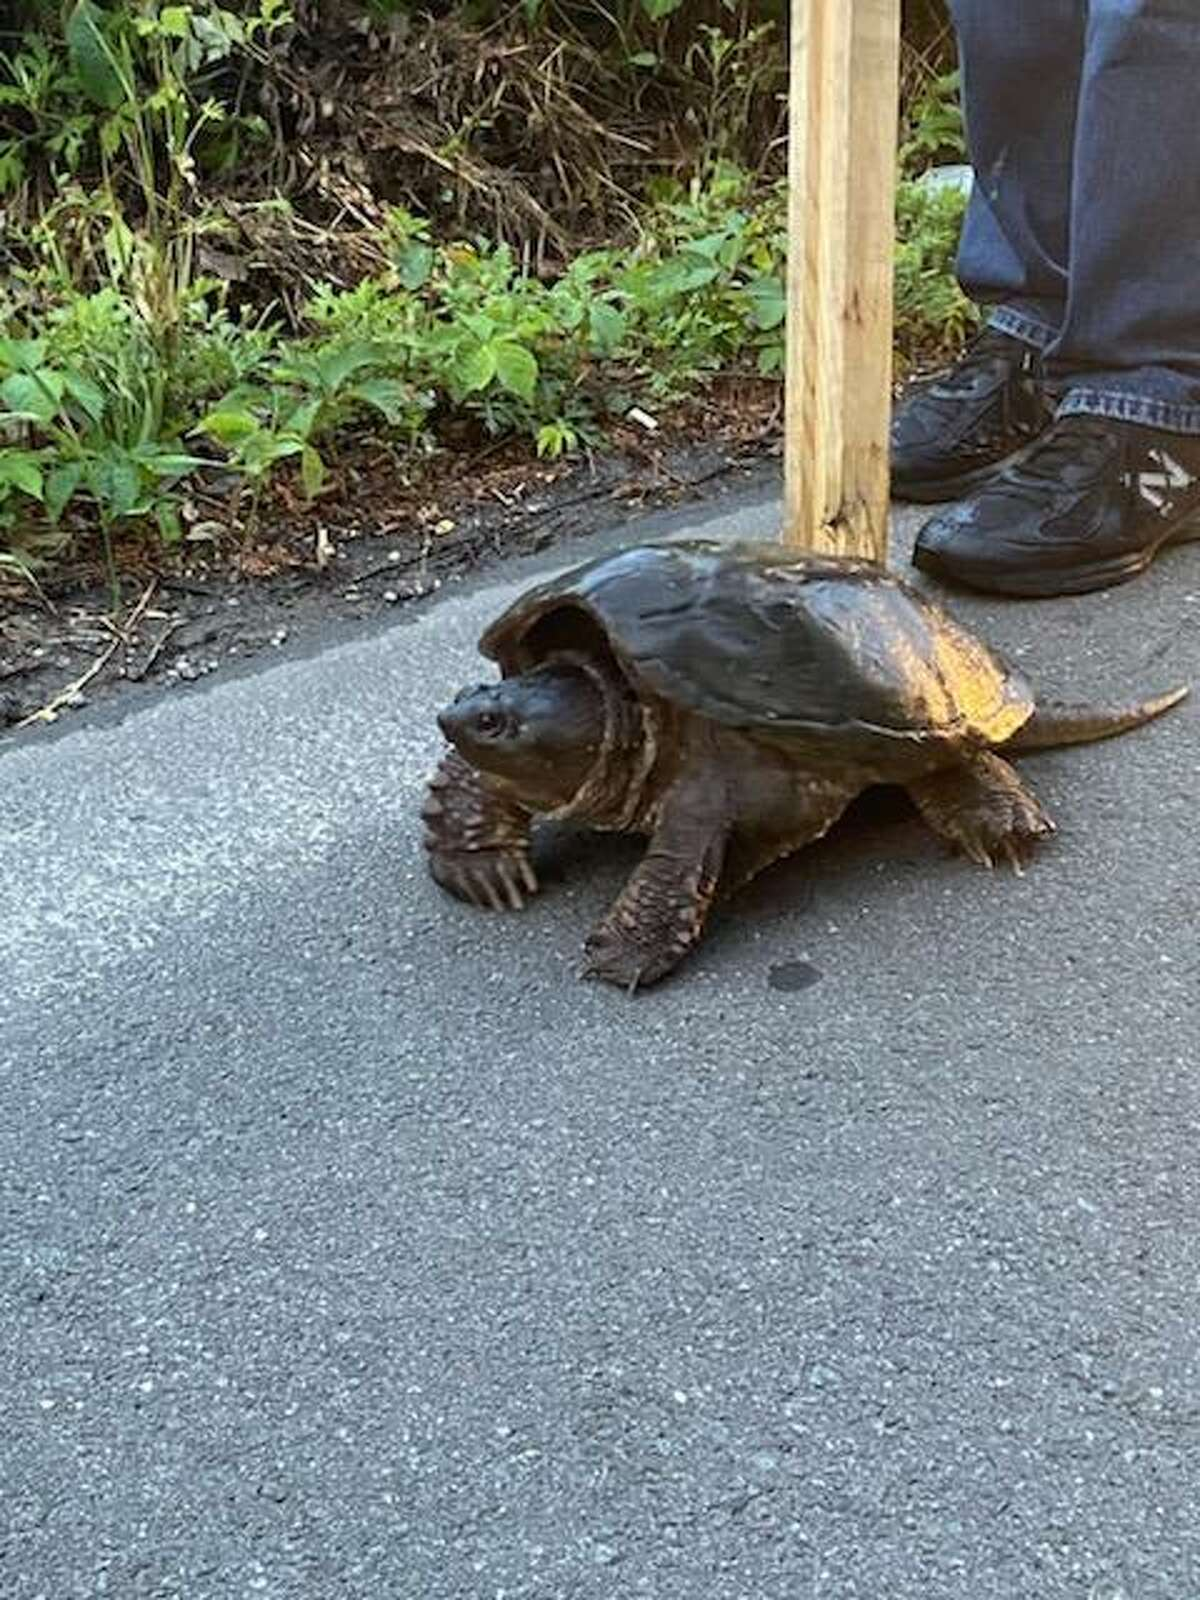 Bruce Pelaccio was on his way to work at Lowe's in Danbury when he spotted this snapping turtle in the middle of the road, so he stopped to move it across the road to safety.